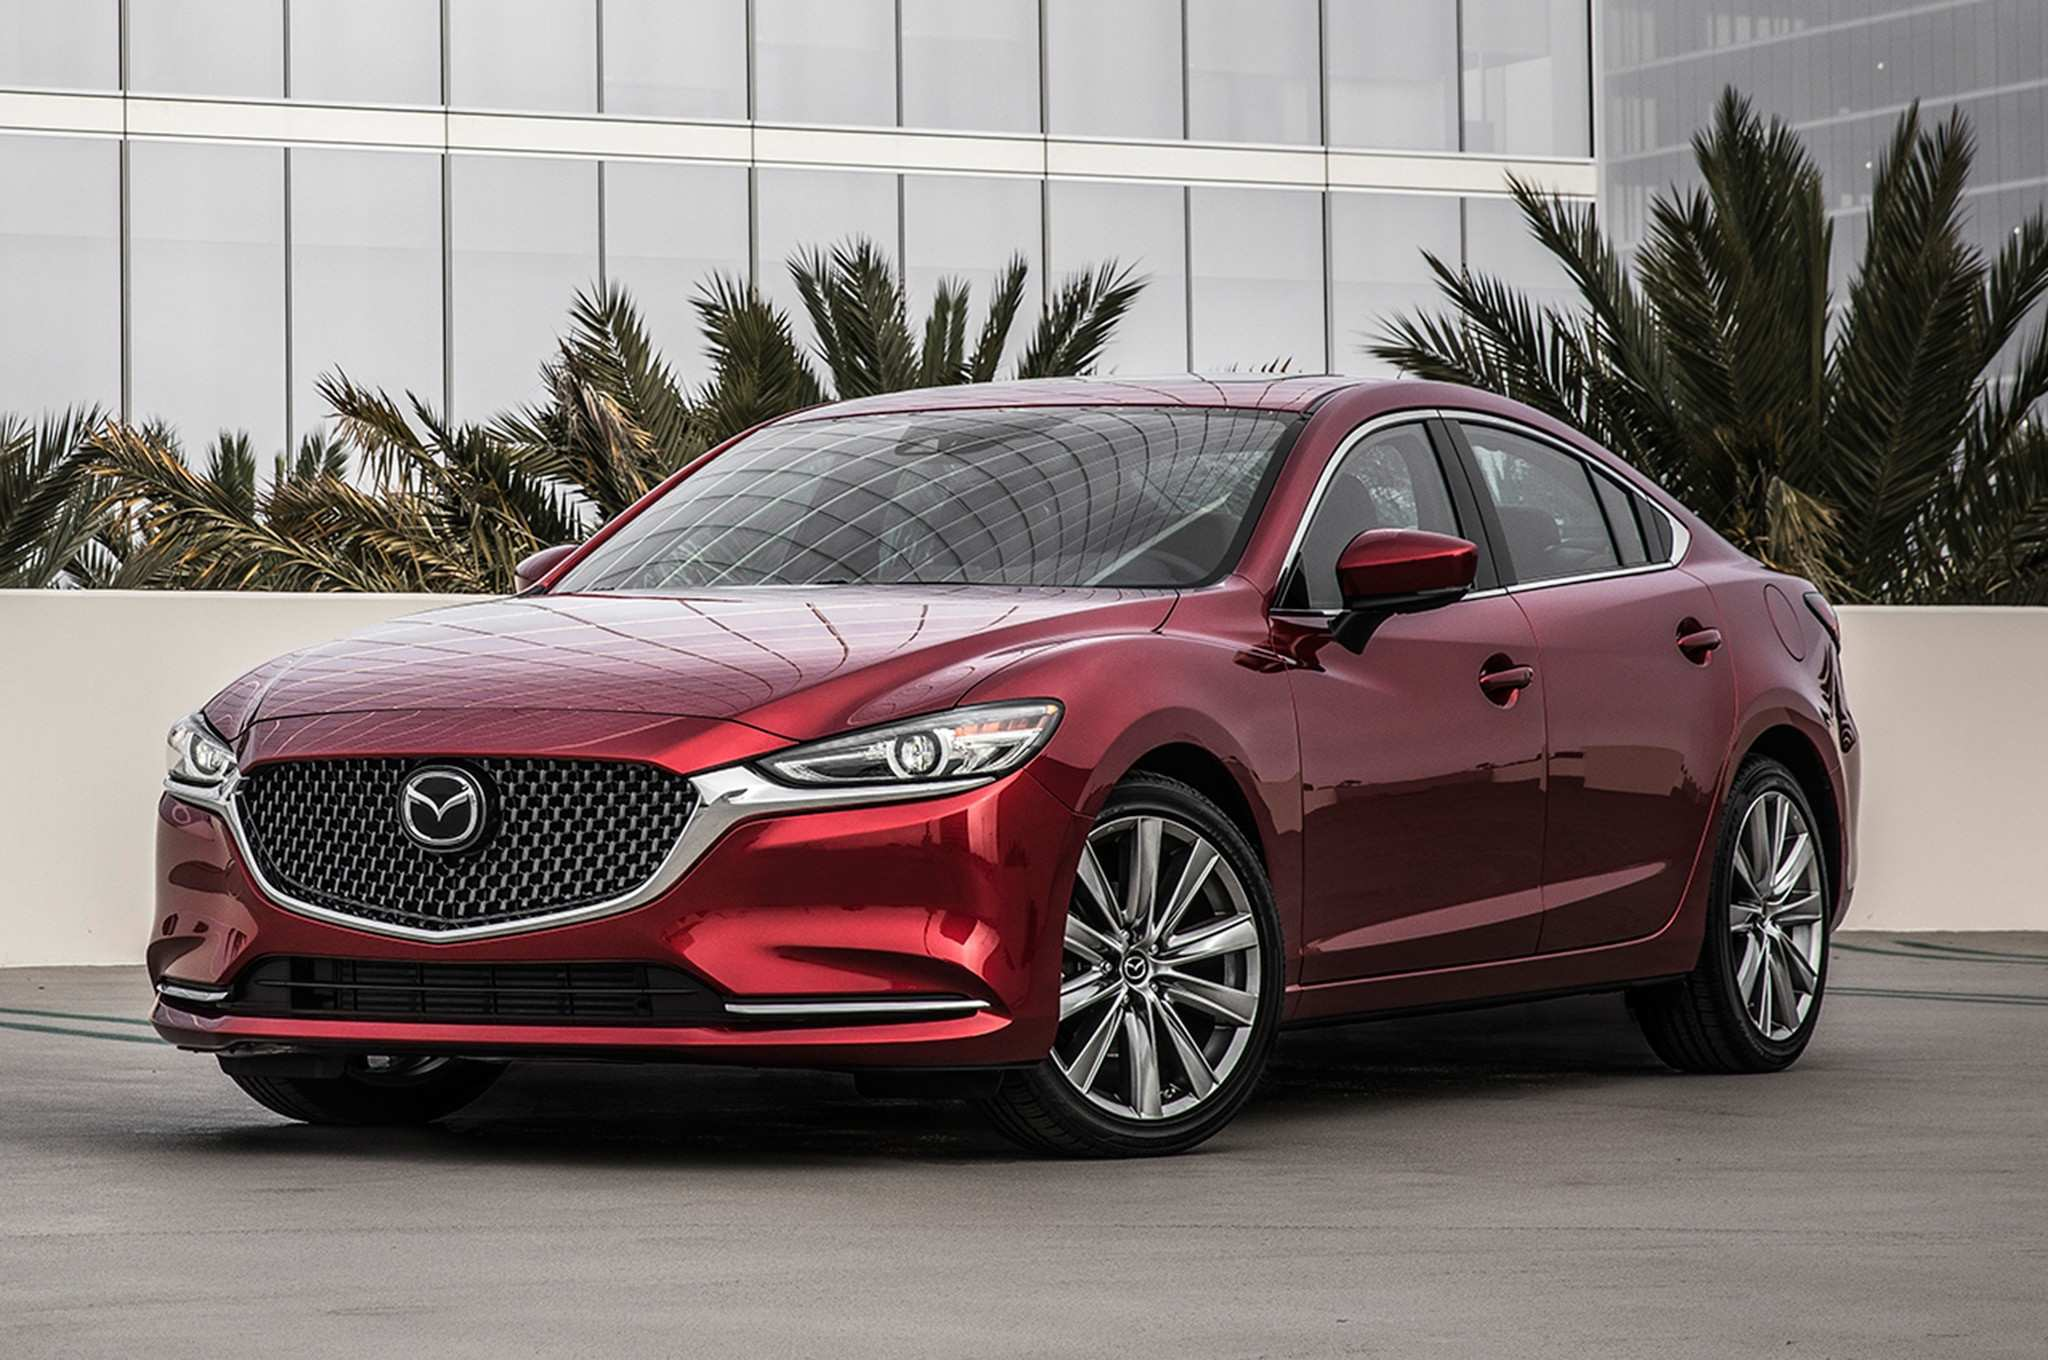 94 A 2019 Mazda 6 Coupe Price and Release date